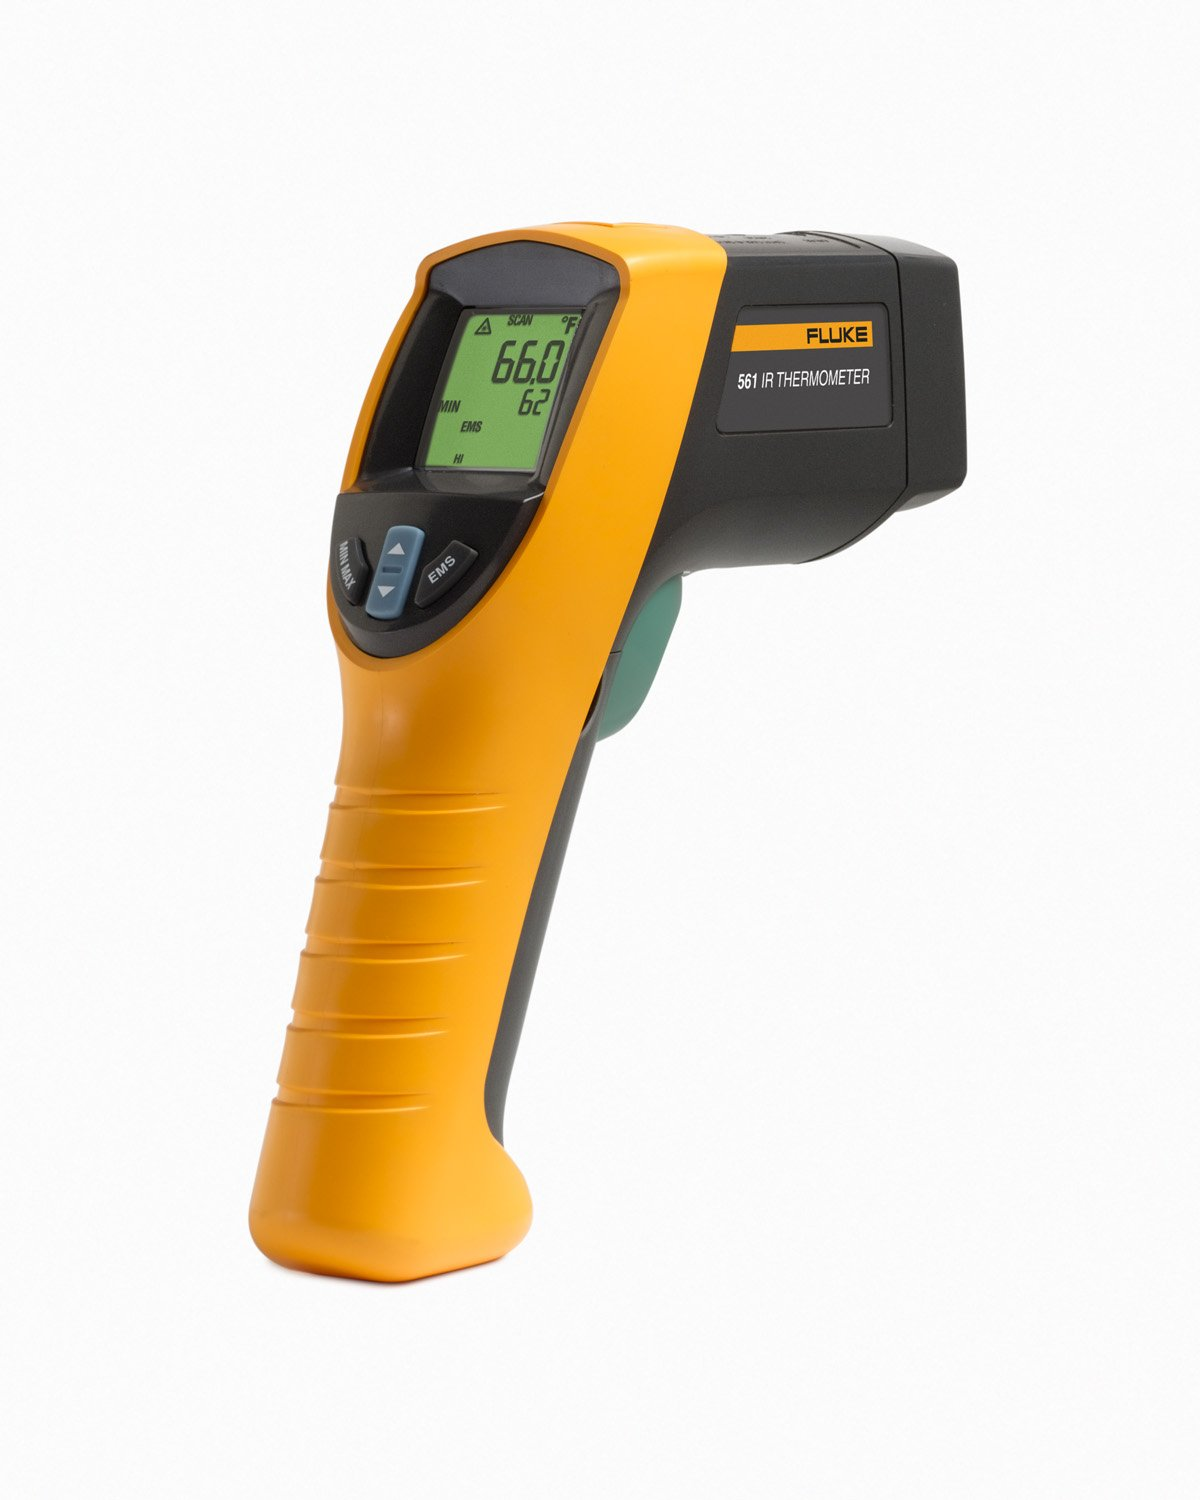 Fluke 561 HVAC Pro Infrared Thermometer, -40 to +1022 Degree F Range